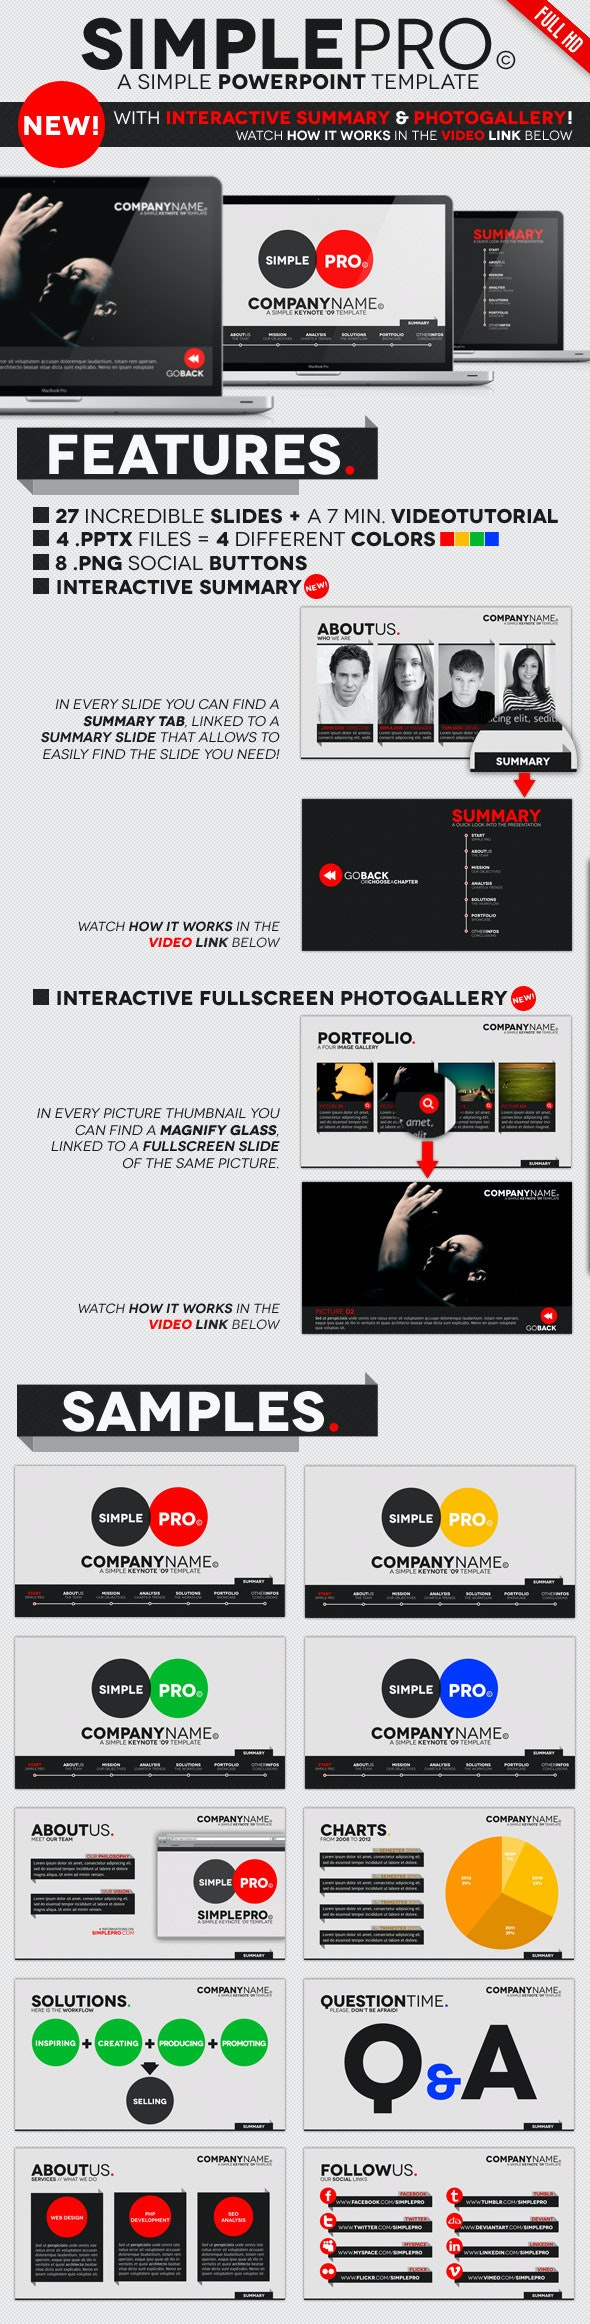 Simple Pro - PowerPoint Interactive Template by opendept